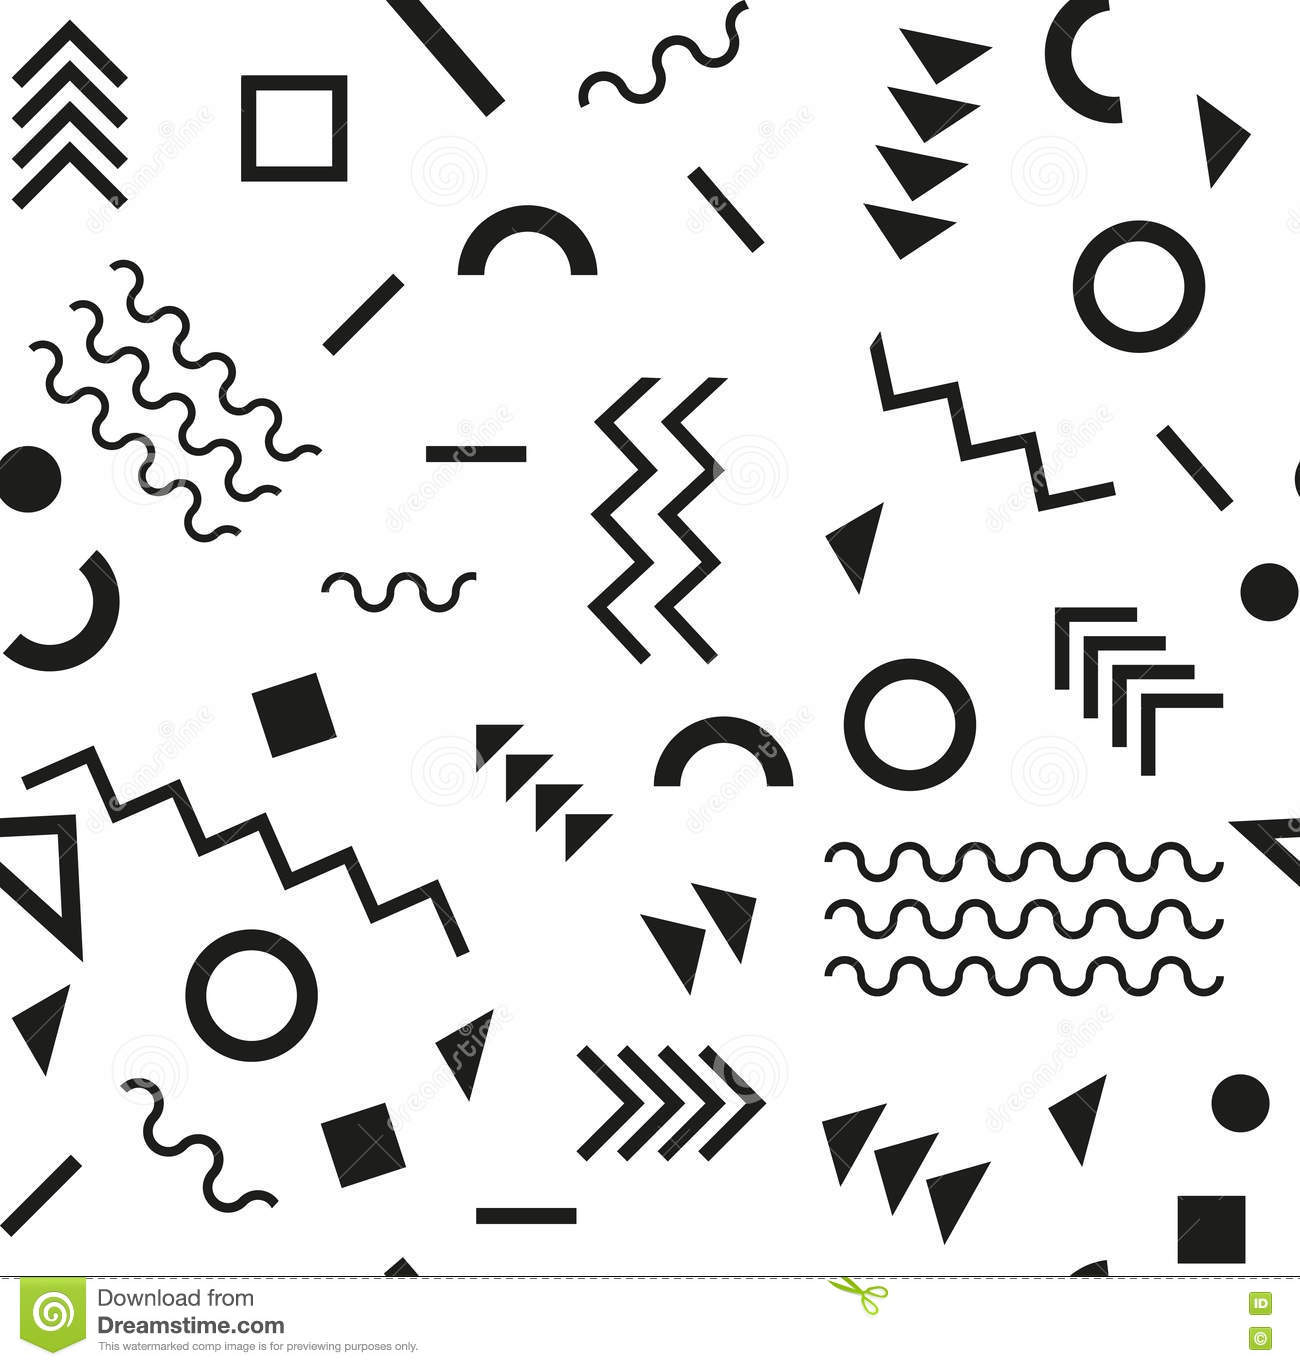 Retro vintage 80s or 90s fashion style. Memphis seamless pattern. Trendy geometric elements. Modern abstract design